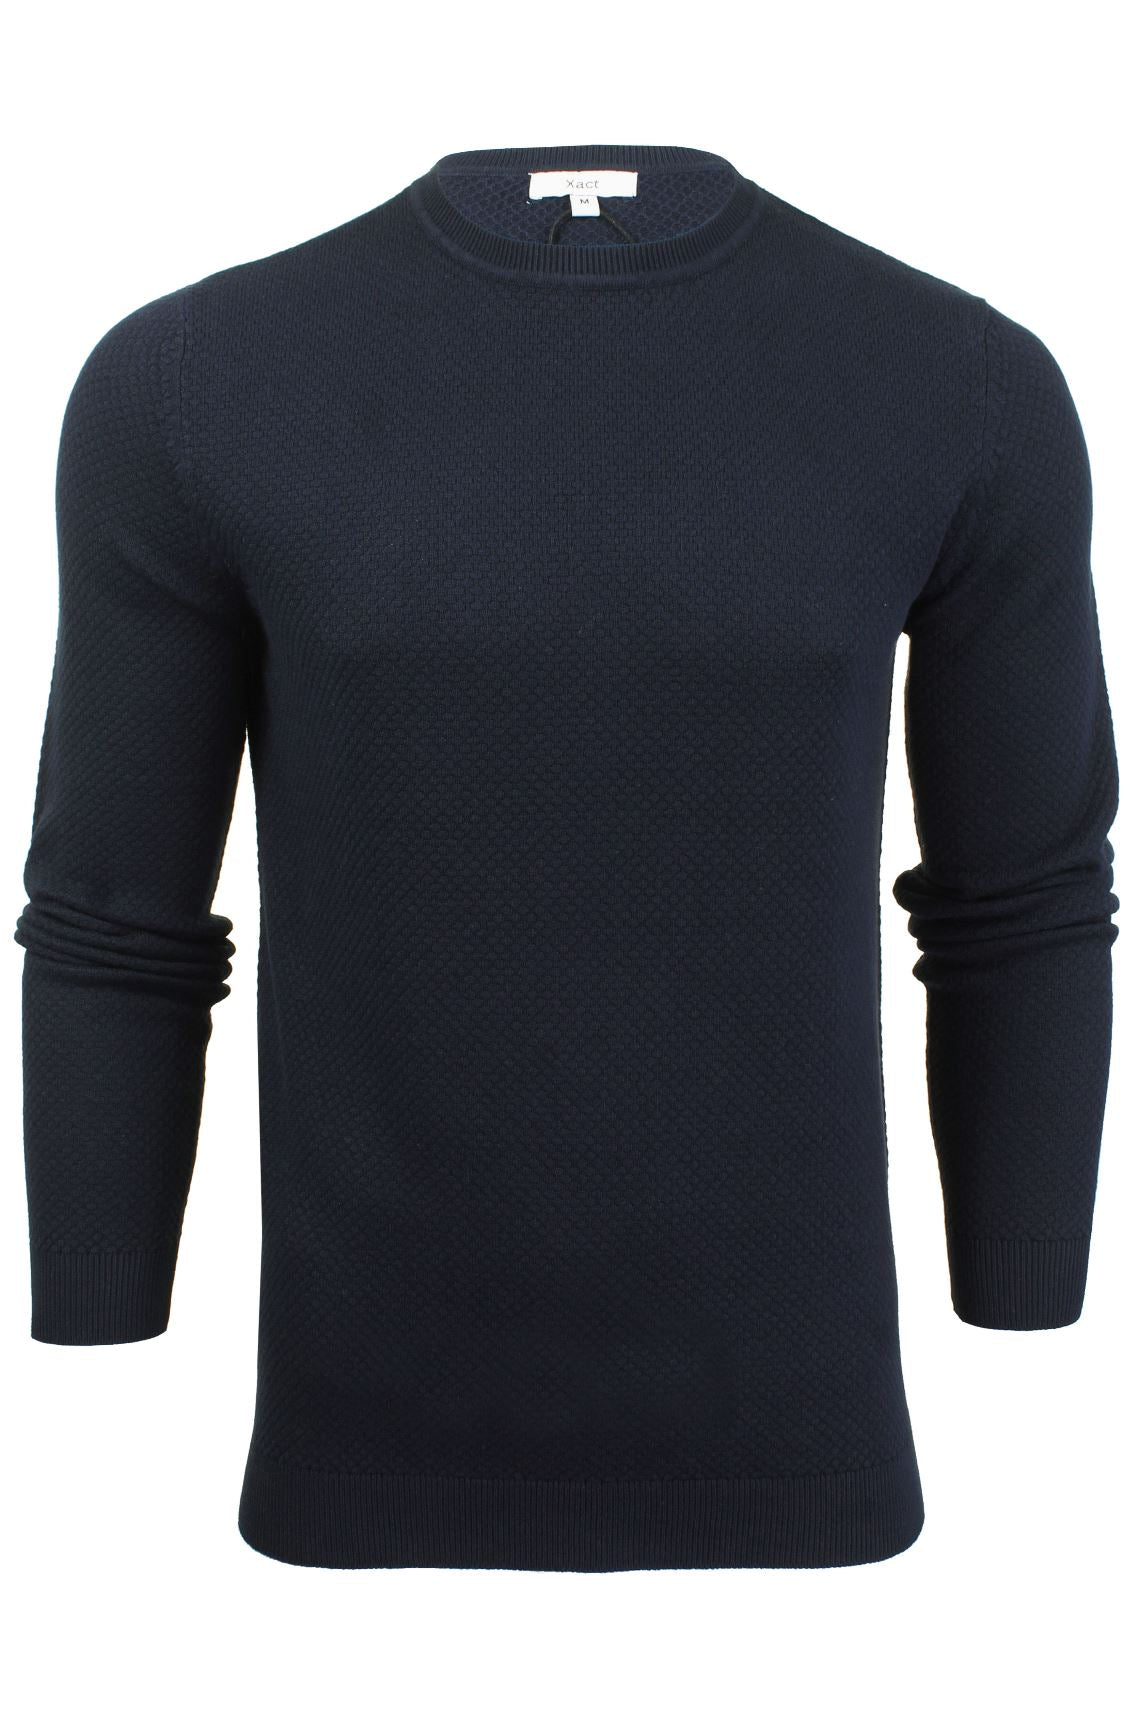 Xact Mens Crew Neck Cotton Jumper_02_XK1013